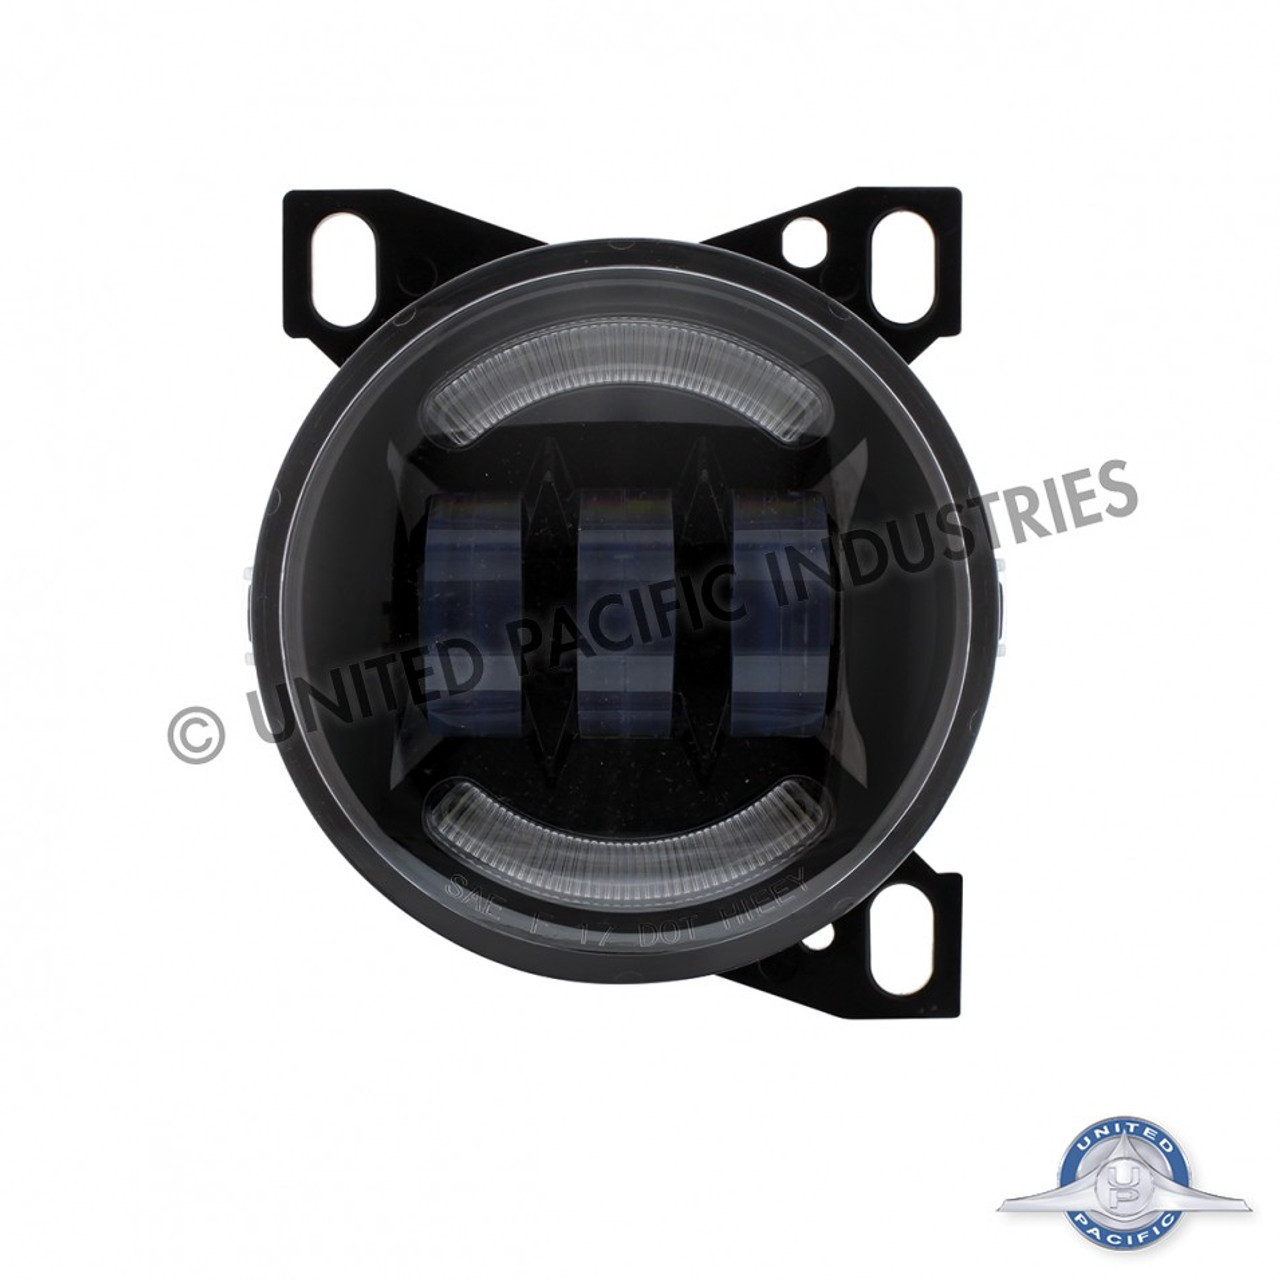 hight resolution of united pacific 4 1 4 black round led fog light with led position light